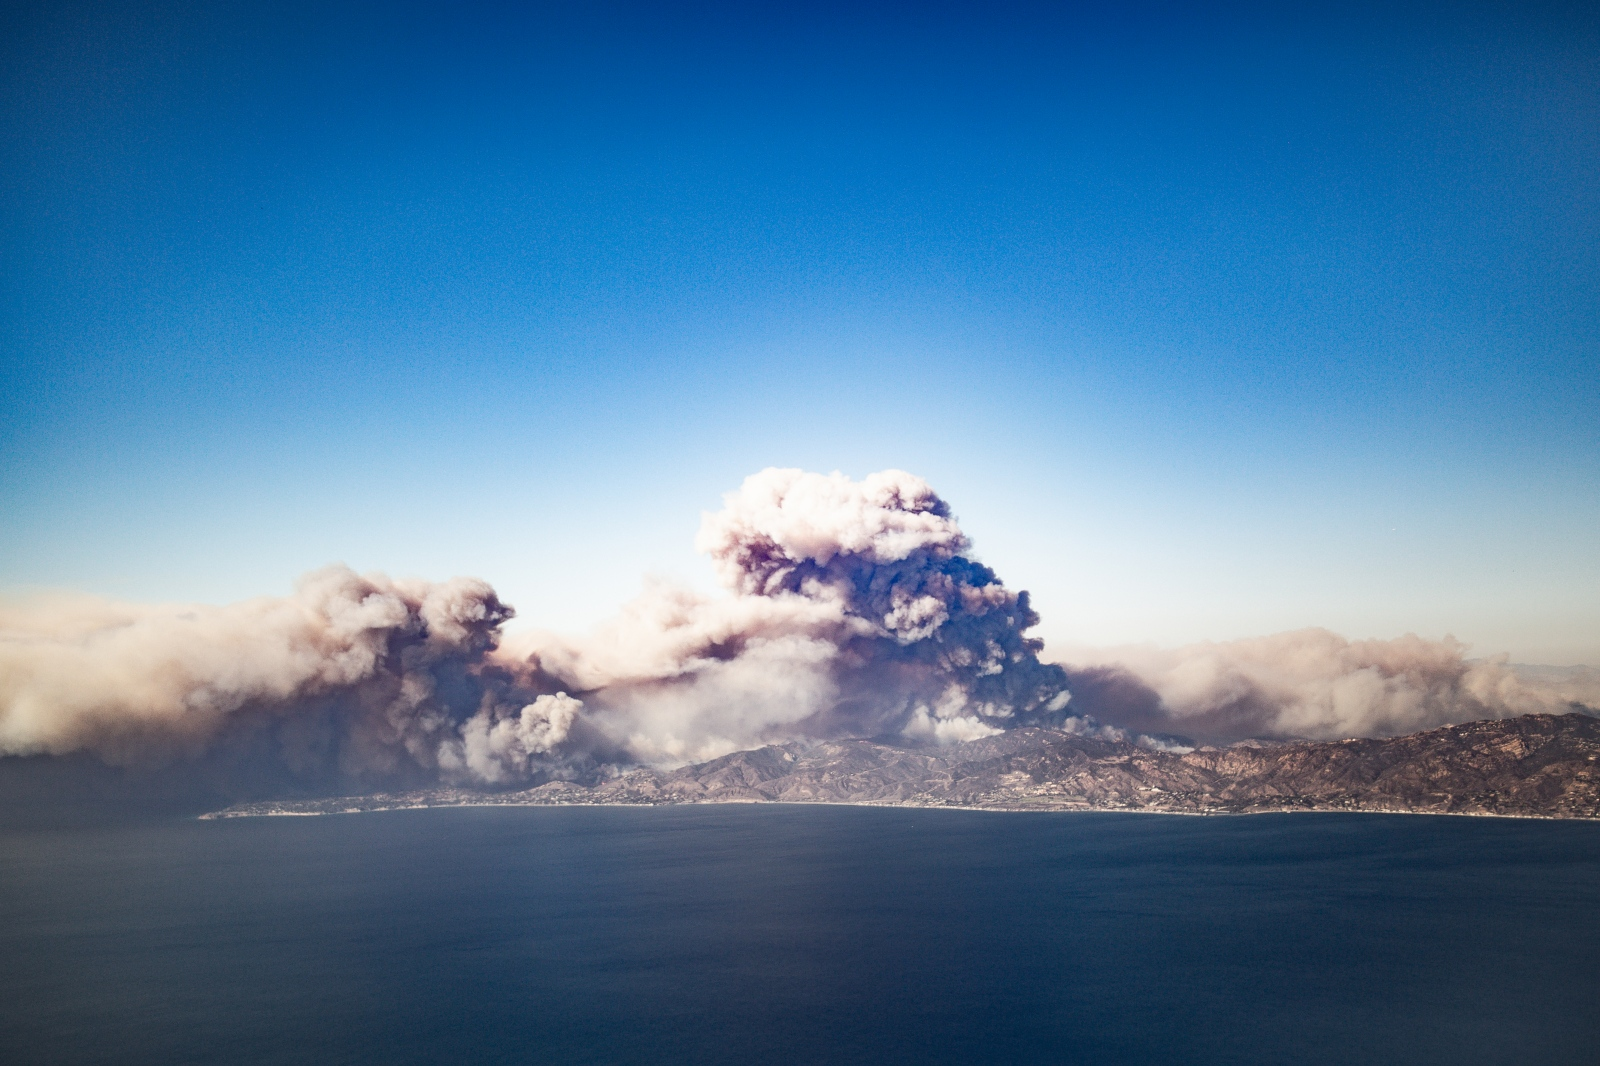 Photography image -  The Day of the Woolsey Fire - Nov. 8, 2018   This shot was taken right above the Woolsey Fire on the first day the fire broke out. Smoke plumes from the Santa Monica Mountain Range. We had quite a bit of distance between us and the fires but you could still feel the heat from the plane. Roughly 1600 structures were destroyed and just under 100,00 acres of land scorched. Fire season has become a year long event for California and despite the copious amount of rain that 2019 has received we must be ever vigilant to help prevent wildfire outbreaks.